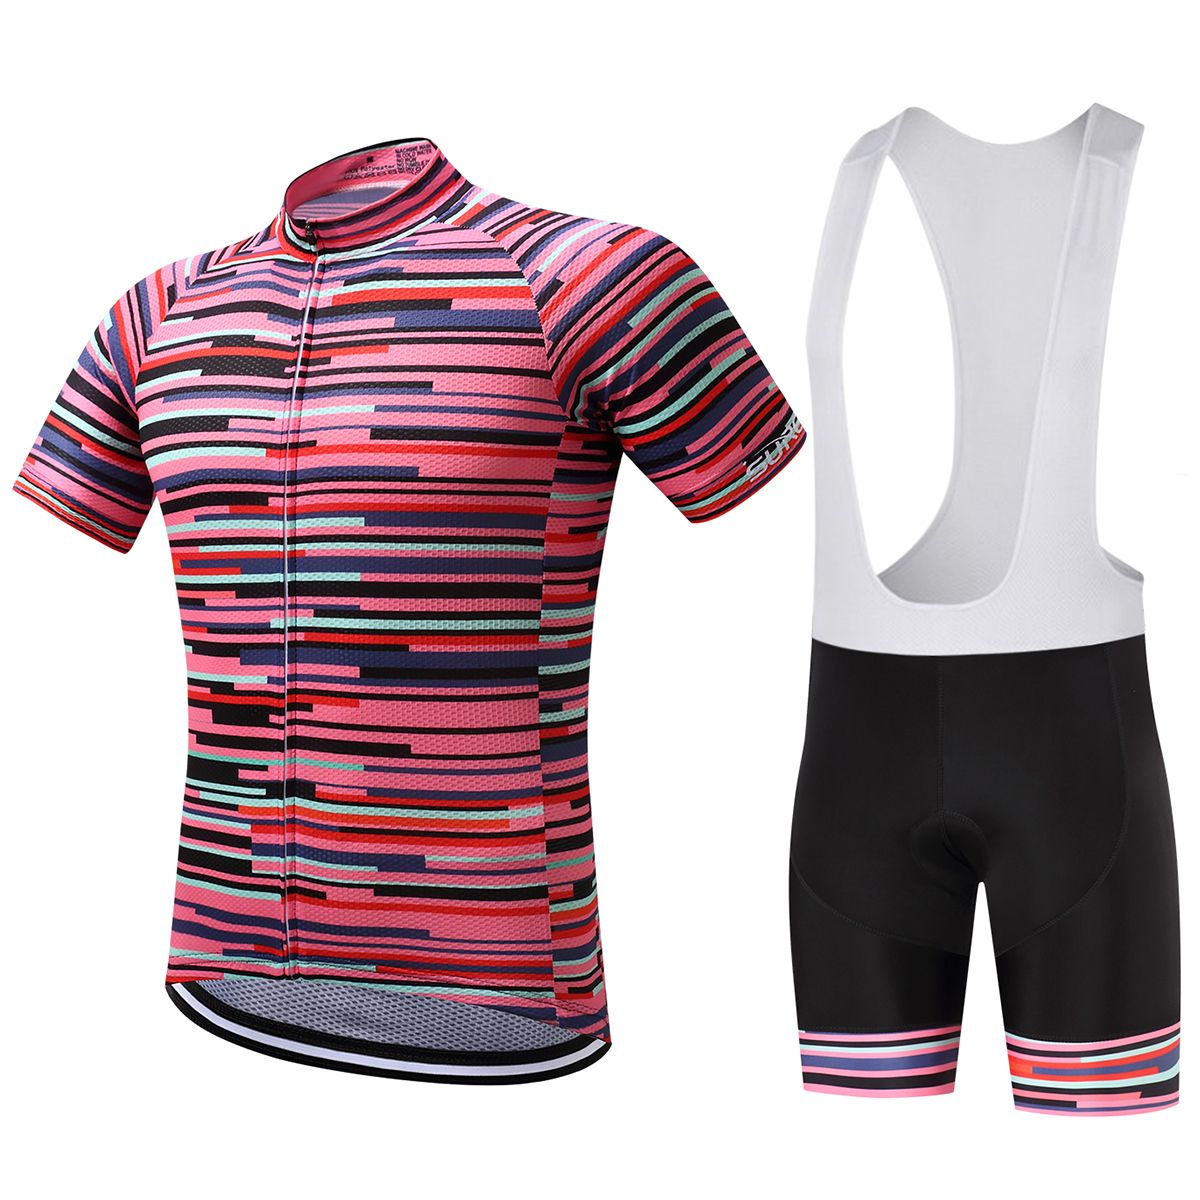 4fb8af1d5 SUREA Mens Short Sleeve Cycling Jersey Ropa de Ciclismo Road Bicycle Racing Cycle  Clothes Mtb Mountain Biking Cycling clothing     AliExpress Affiliate s ...